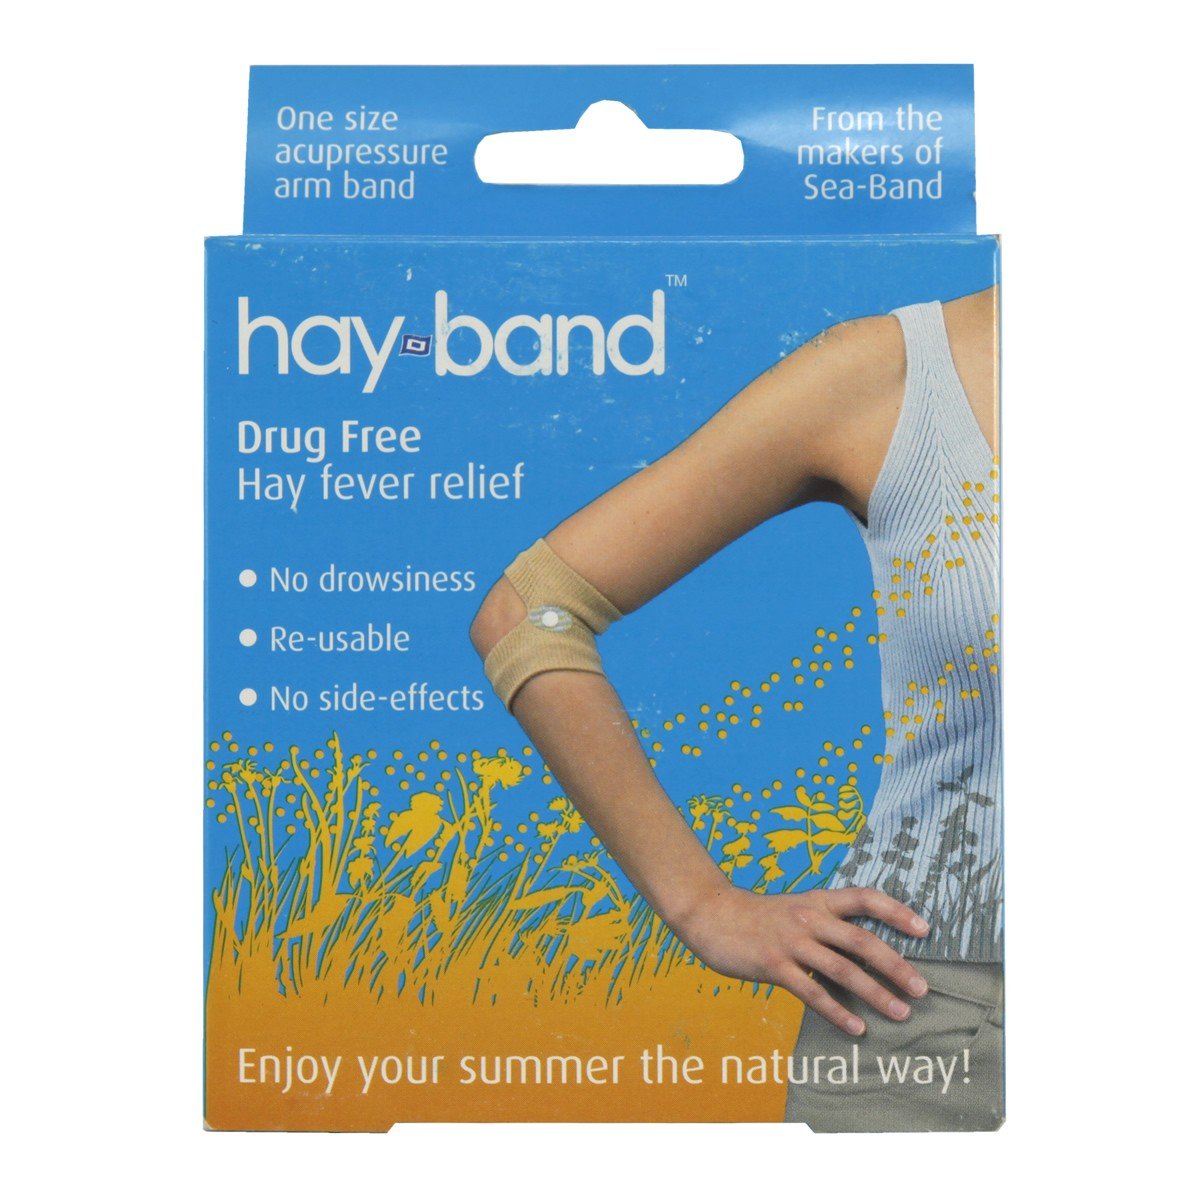 Sea Band Hay Band Drug Free Hayfever Relief